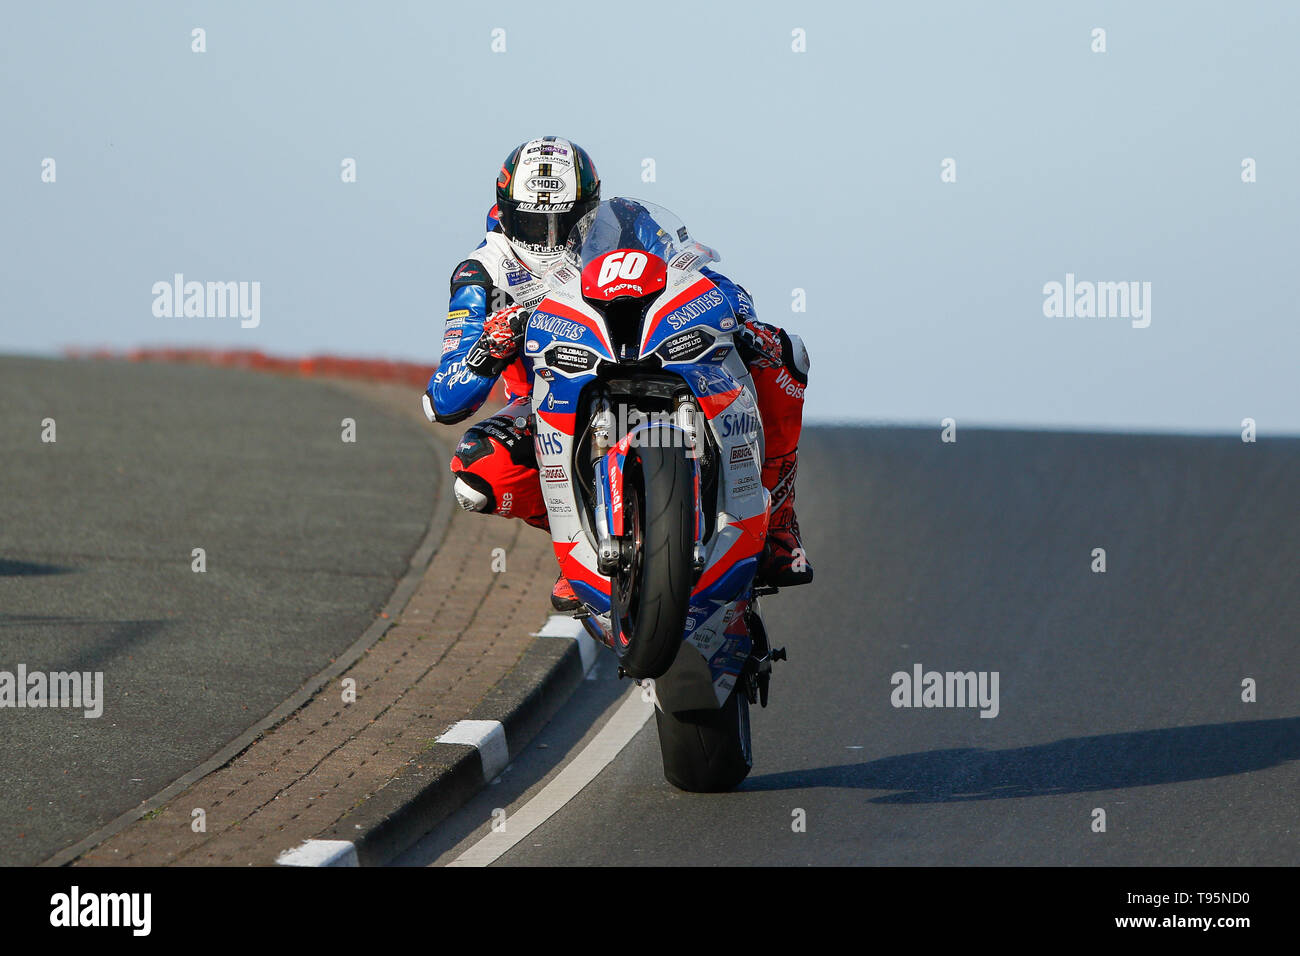 Portrush, Northern Ireland. 16th May, 2019. International North West 200 Motorcycle road racing, Thursday practice and evening racing; Peter Hickman wins the SuperStock race on the Smiths Racing BMW ahead of Glenn Irwin (Quattro Plant Wicked Coatings Kawasaki) Credit: Action Plus Sports/Alamy Live News - Stock Image